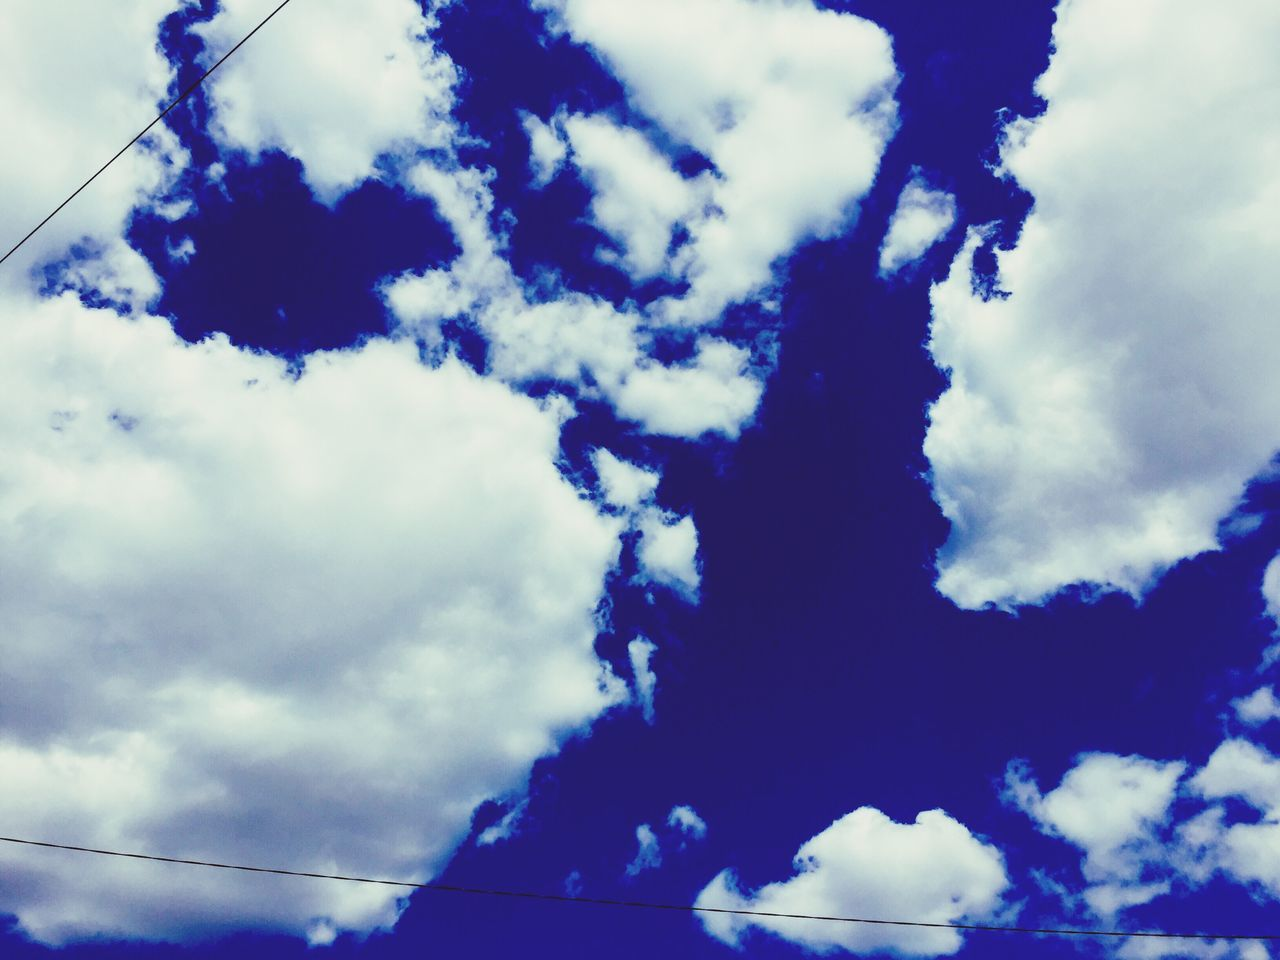 sky, cloud - sky, low angle view, nature, beauty in nature, day, outdoors, blue, no people, tranquility, scenics